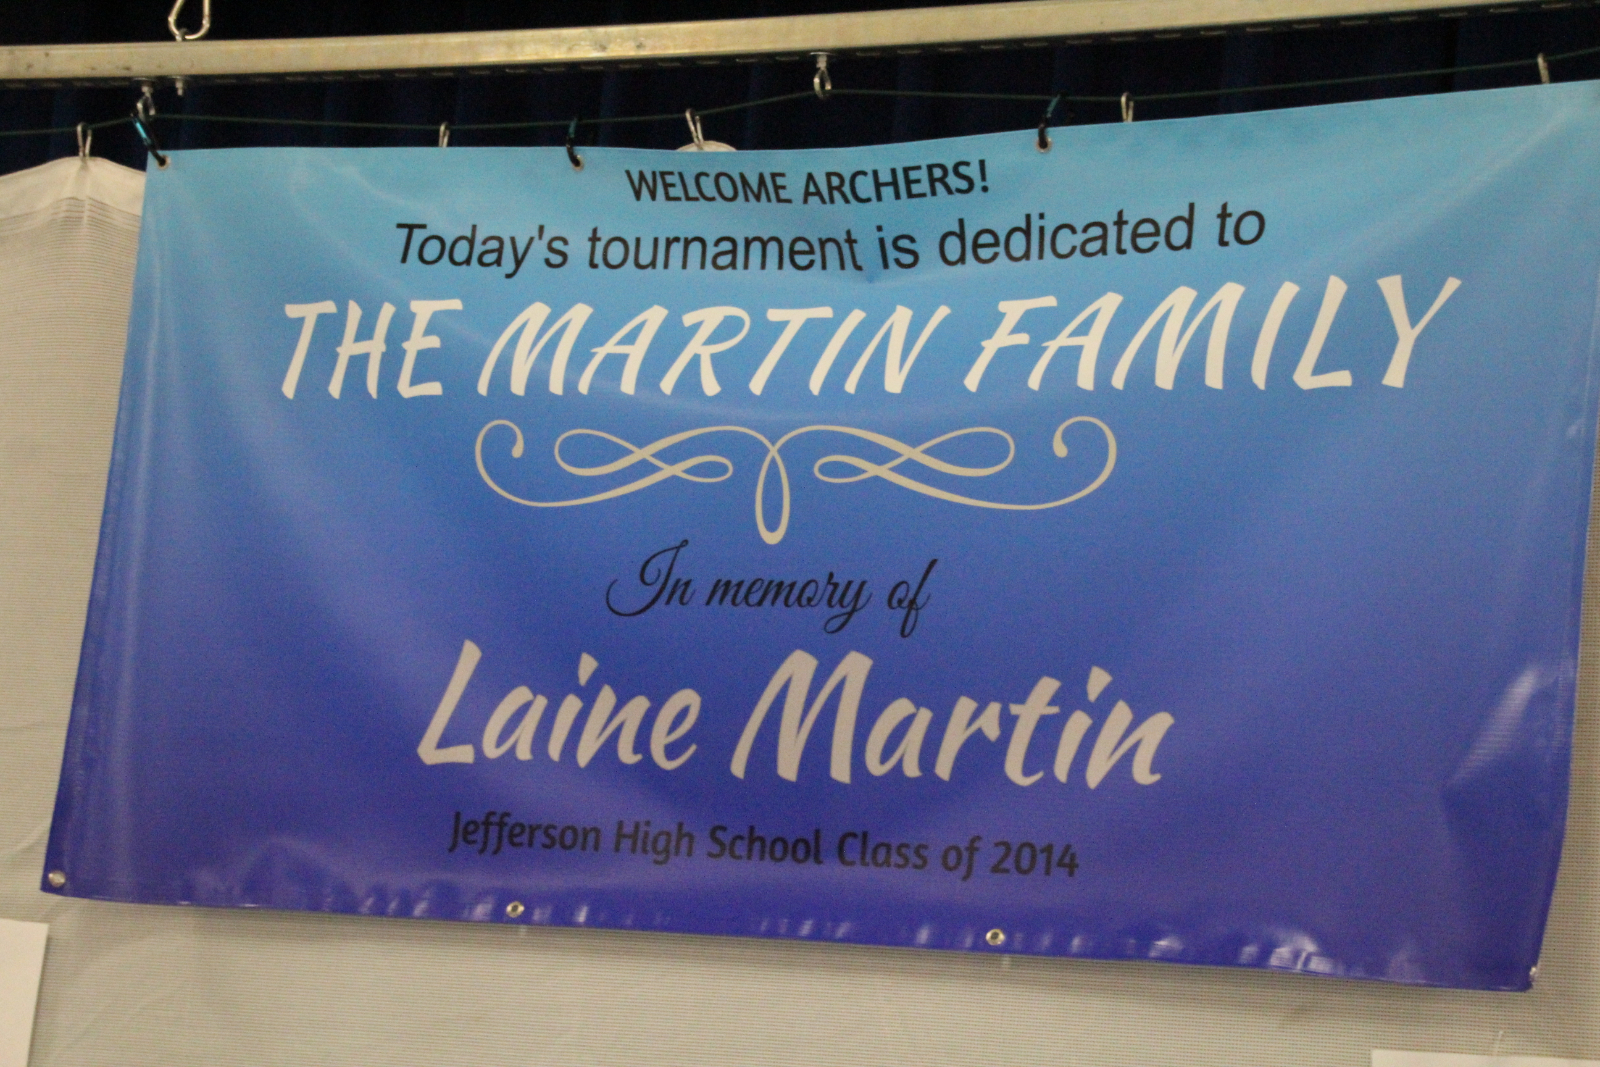 Archery Tournament in Memory of Laine Martin